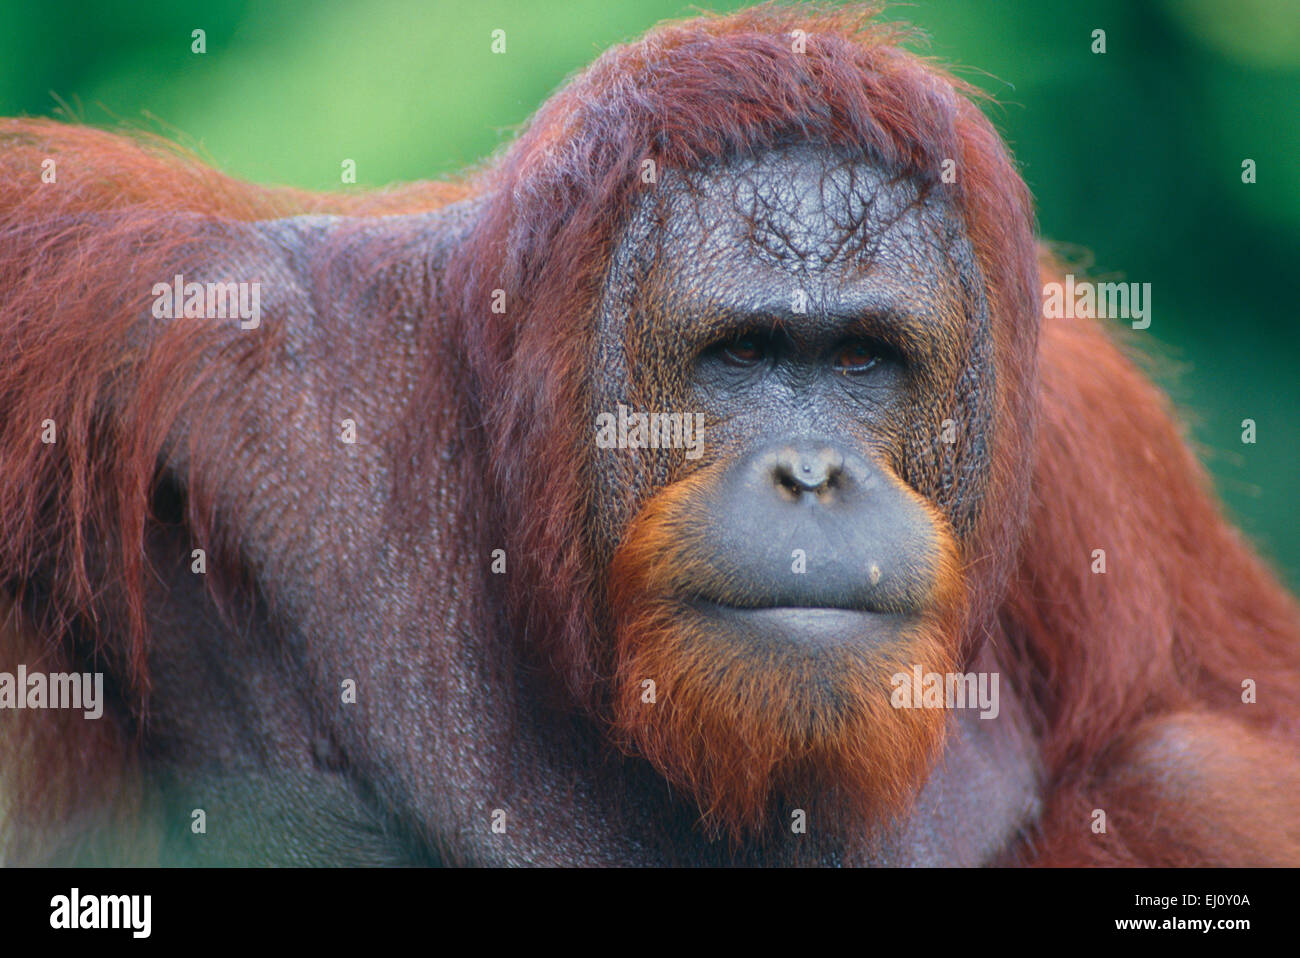 hominidae stock photos hominidae stock images alamy